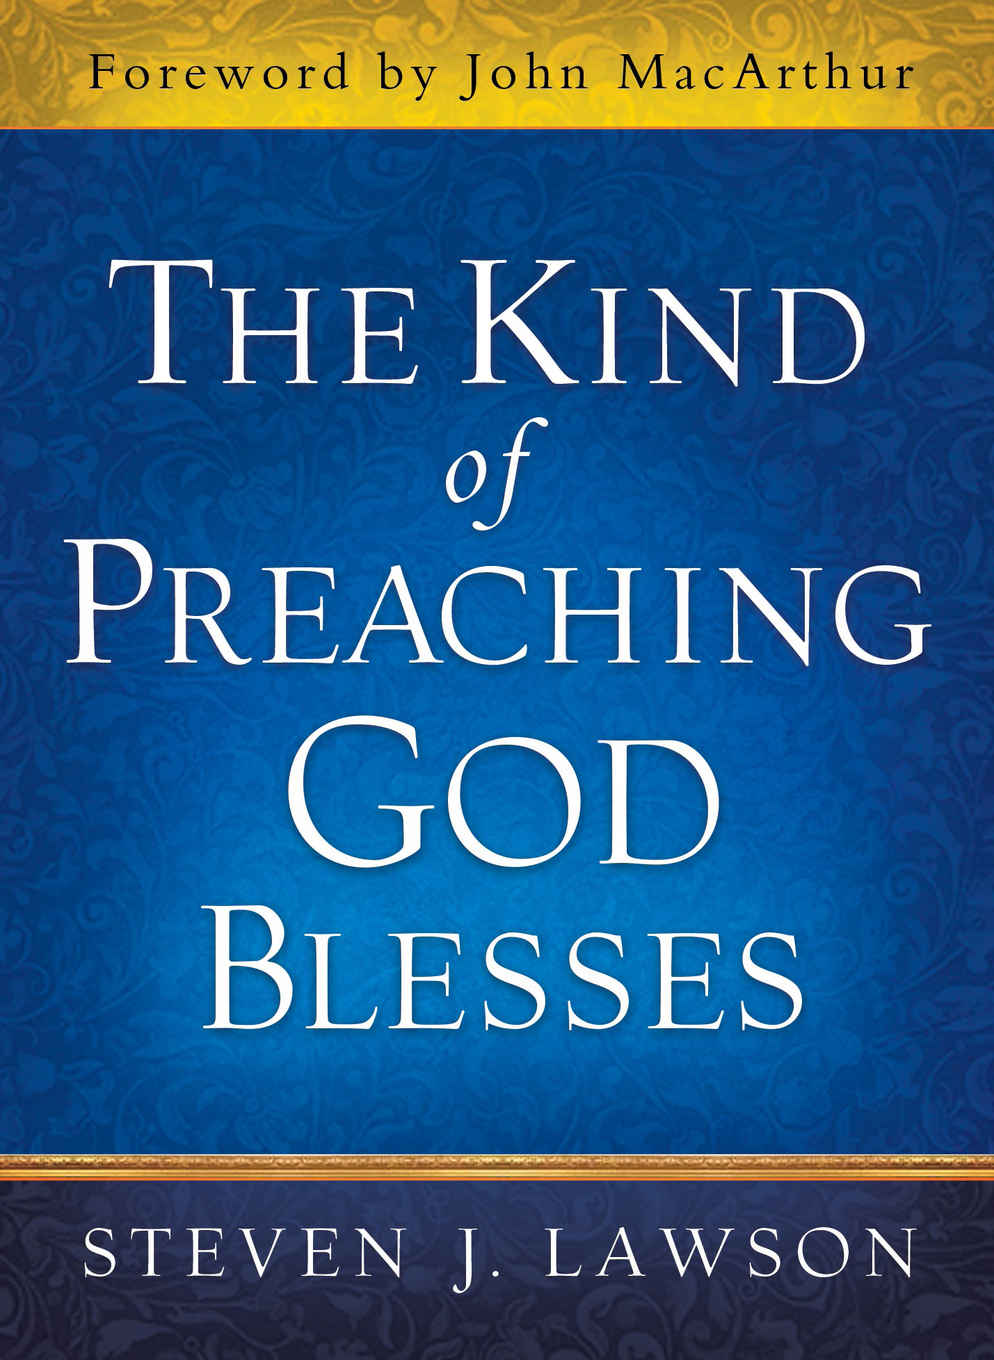 the-kind-of-preaching-god-blesses---book-cover.jpg